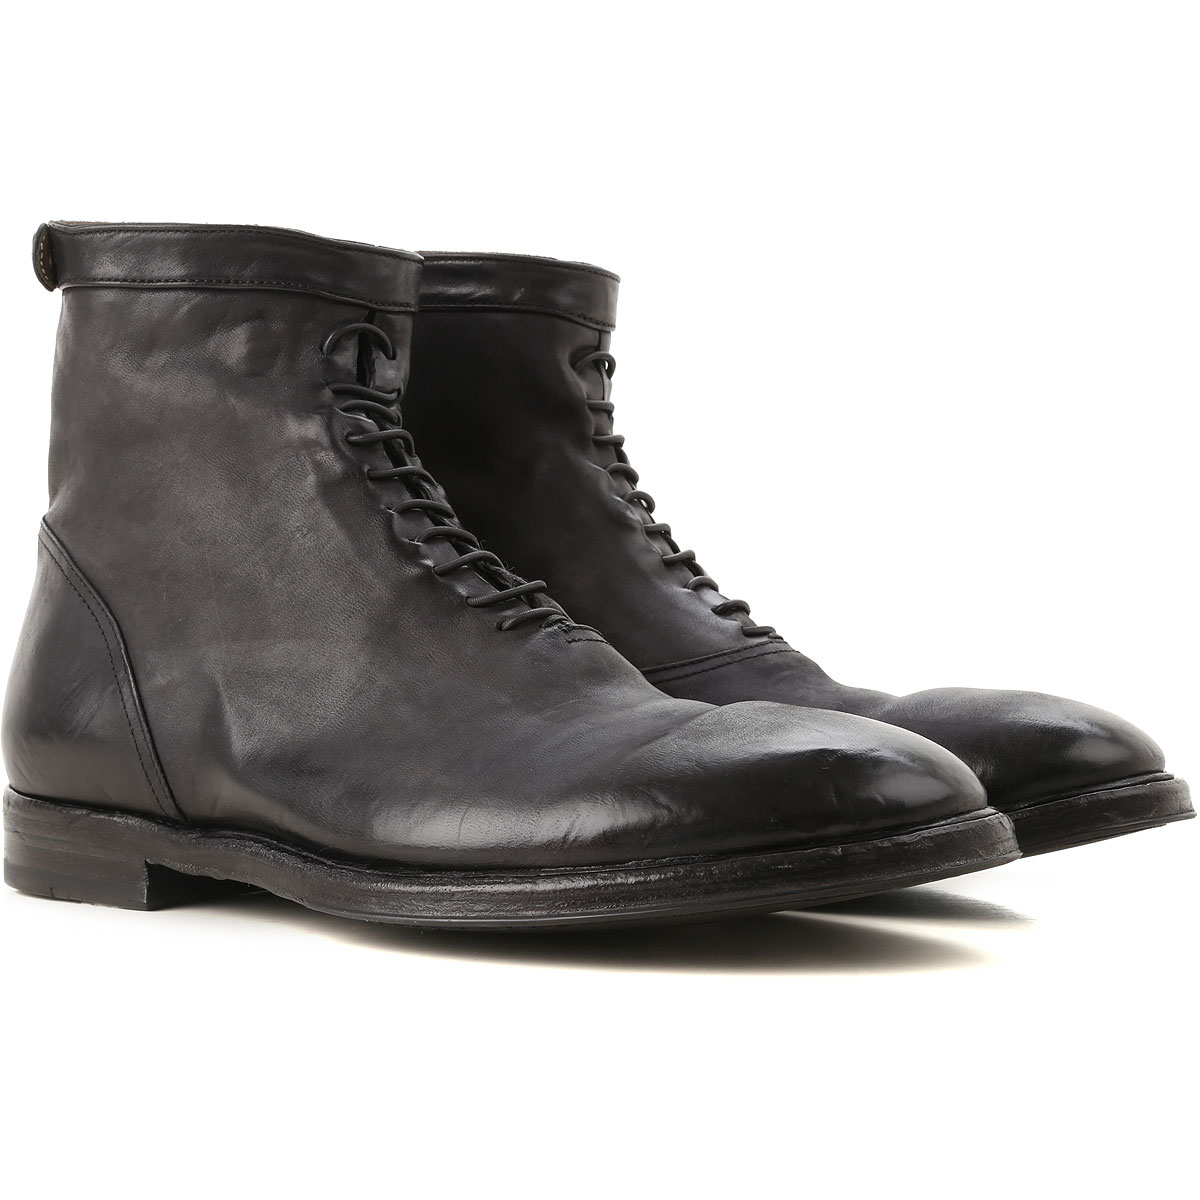 Image of Alberto Fasciani Boots for Men, Booties, Black, Leather, 2017, 8 9